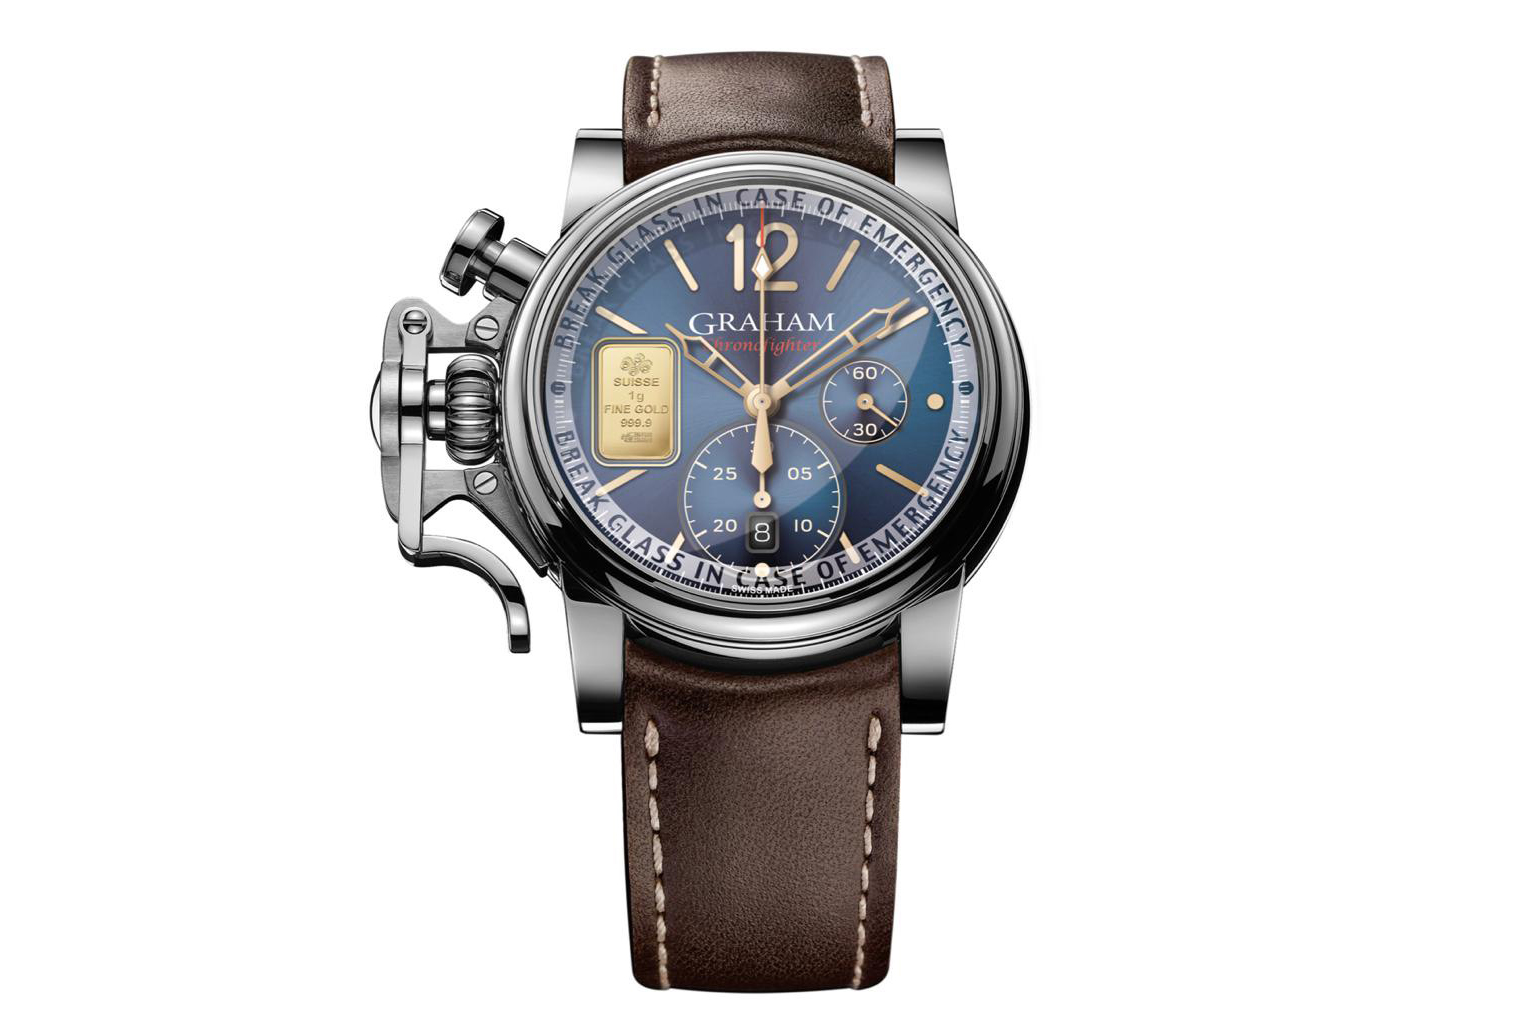 You are currently viewing 2021年10月 新作CHRONOFIGHTER VINTAGE Lim Emergency Gold が発売